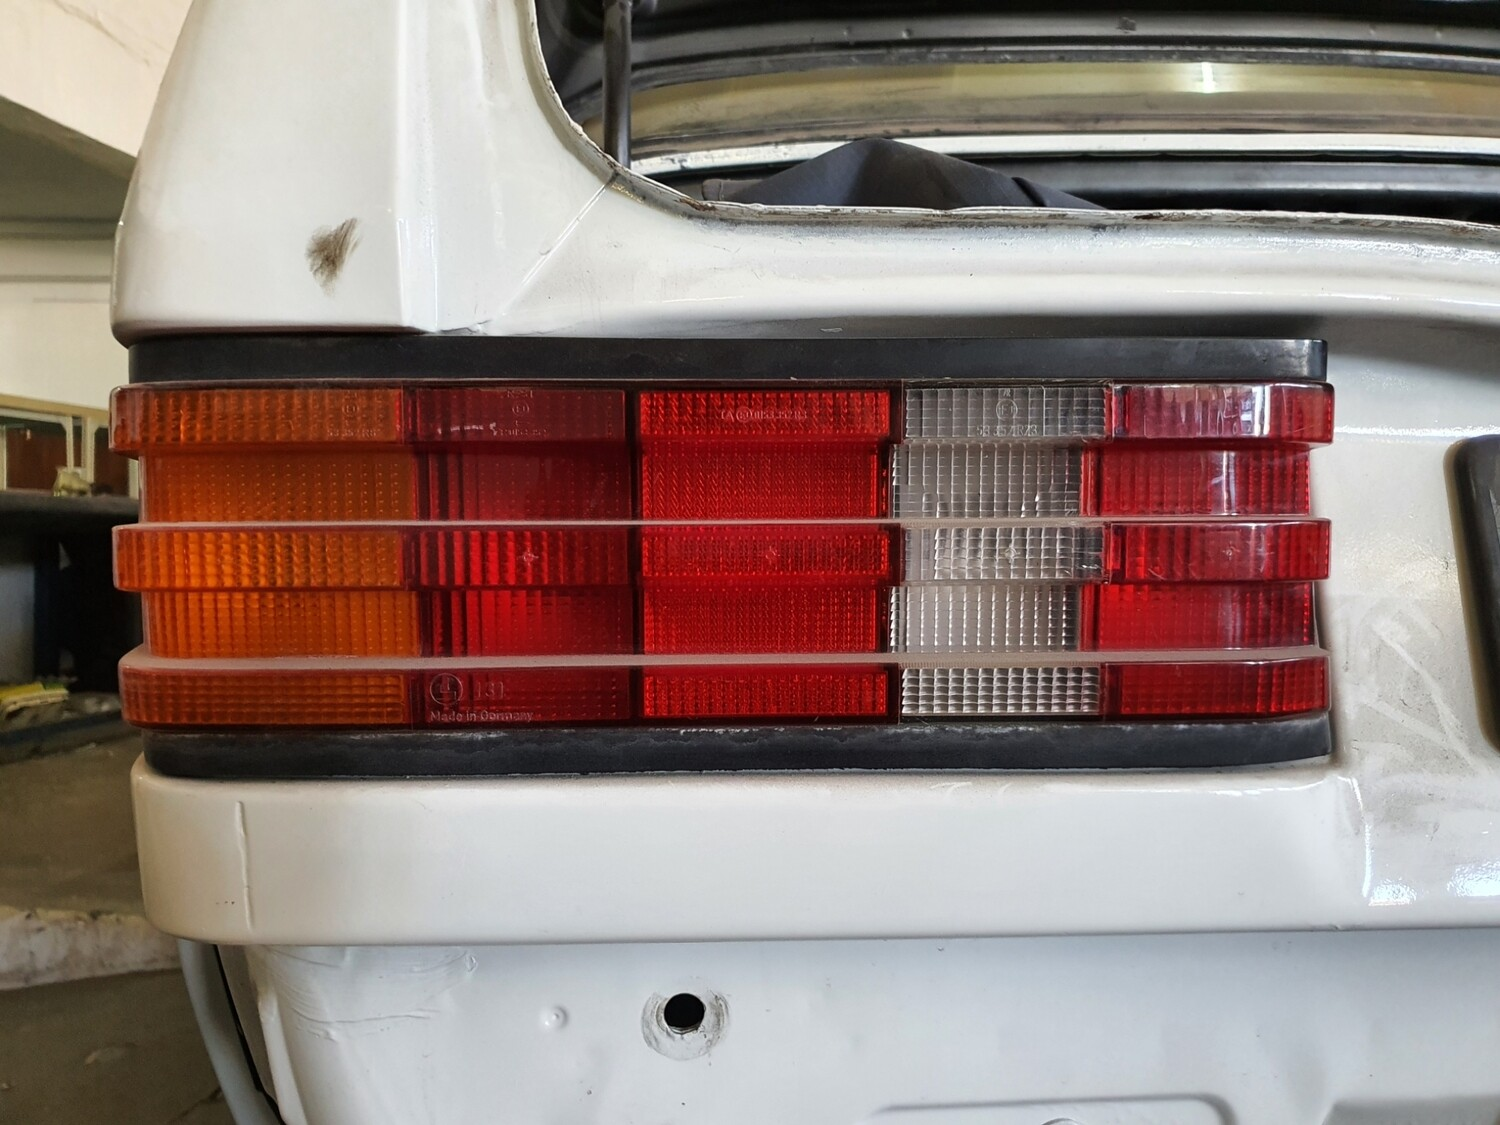 Mercedes-Benz W201 Left Tail Light